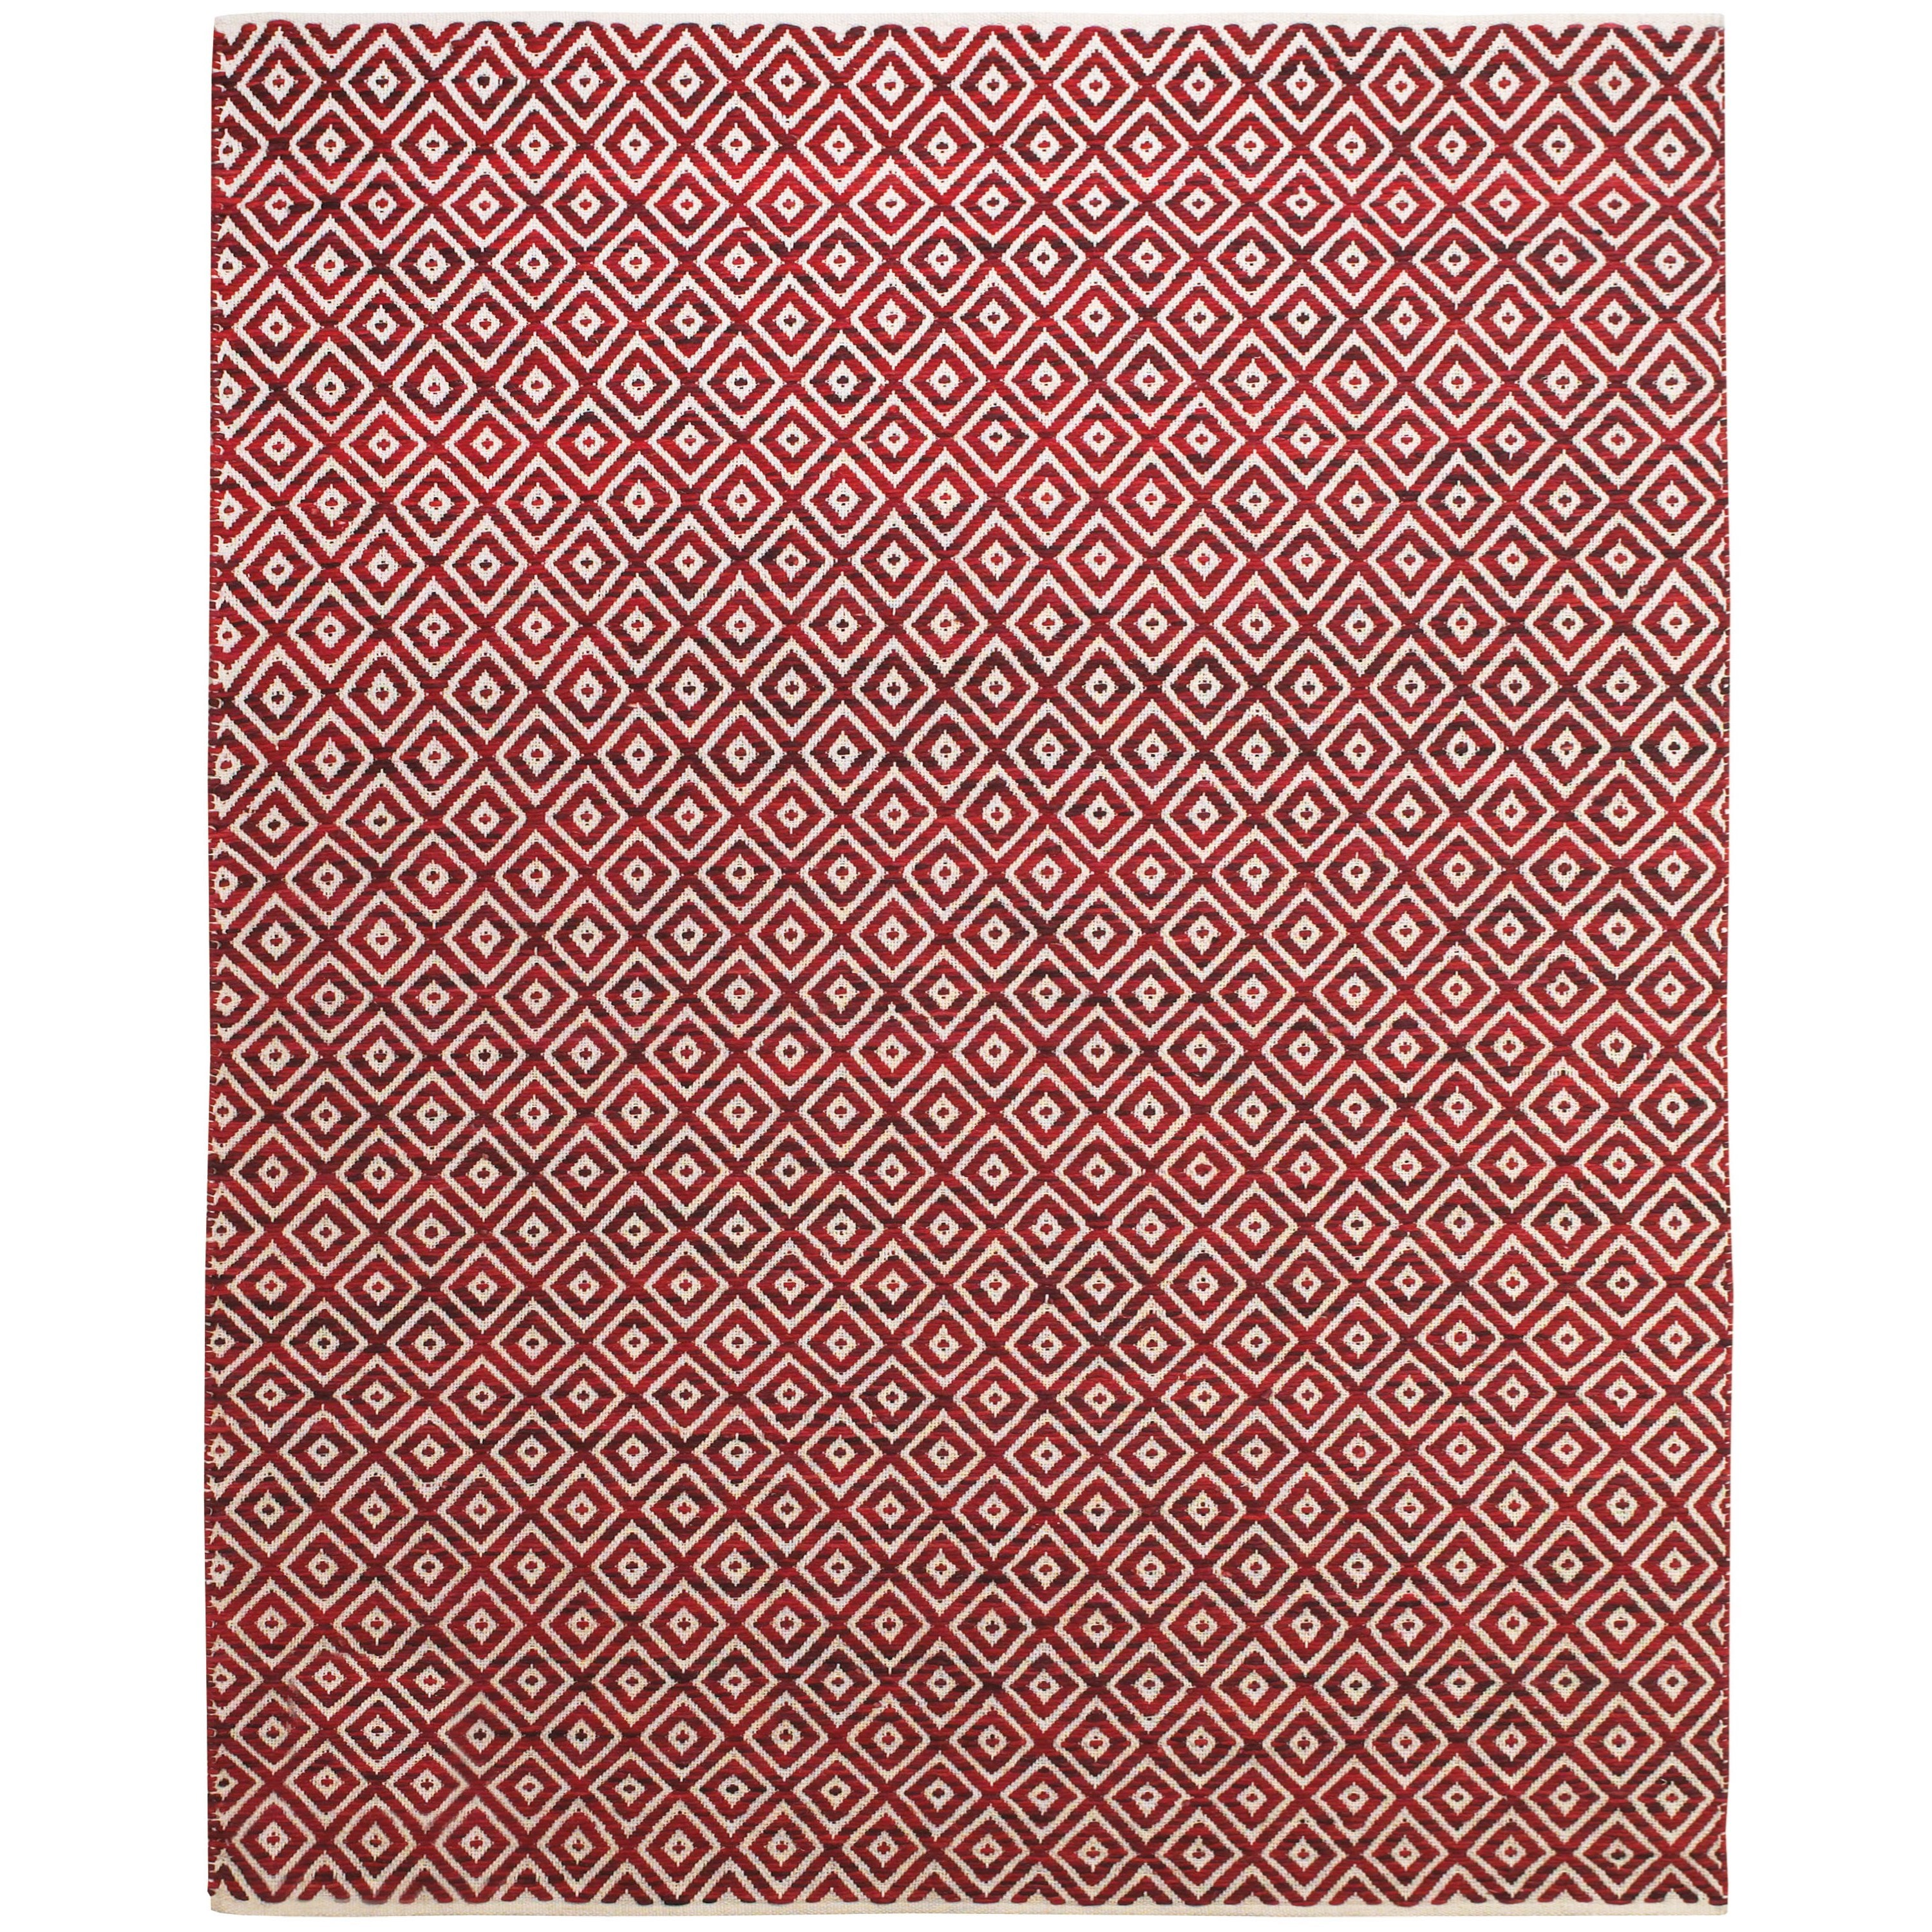 Mojave Red 8' X 11' Area Rug by Feizy Rugs at Jacksonville Furniture Mart